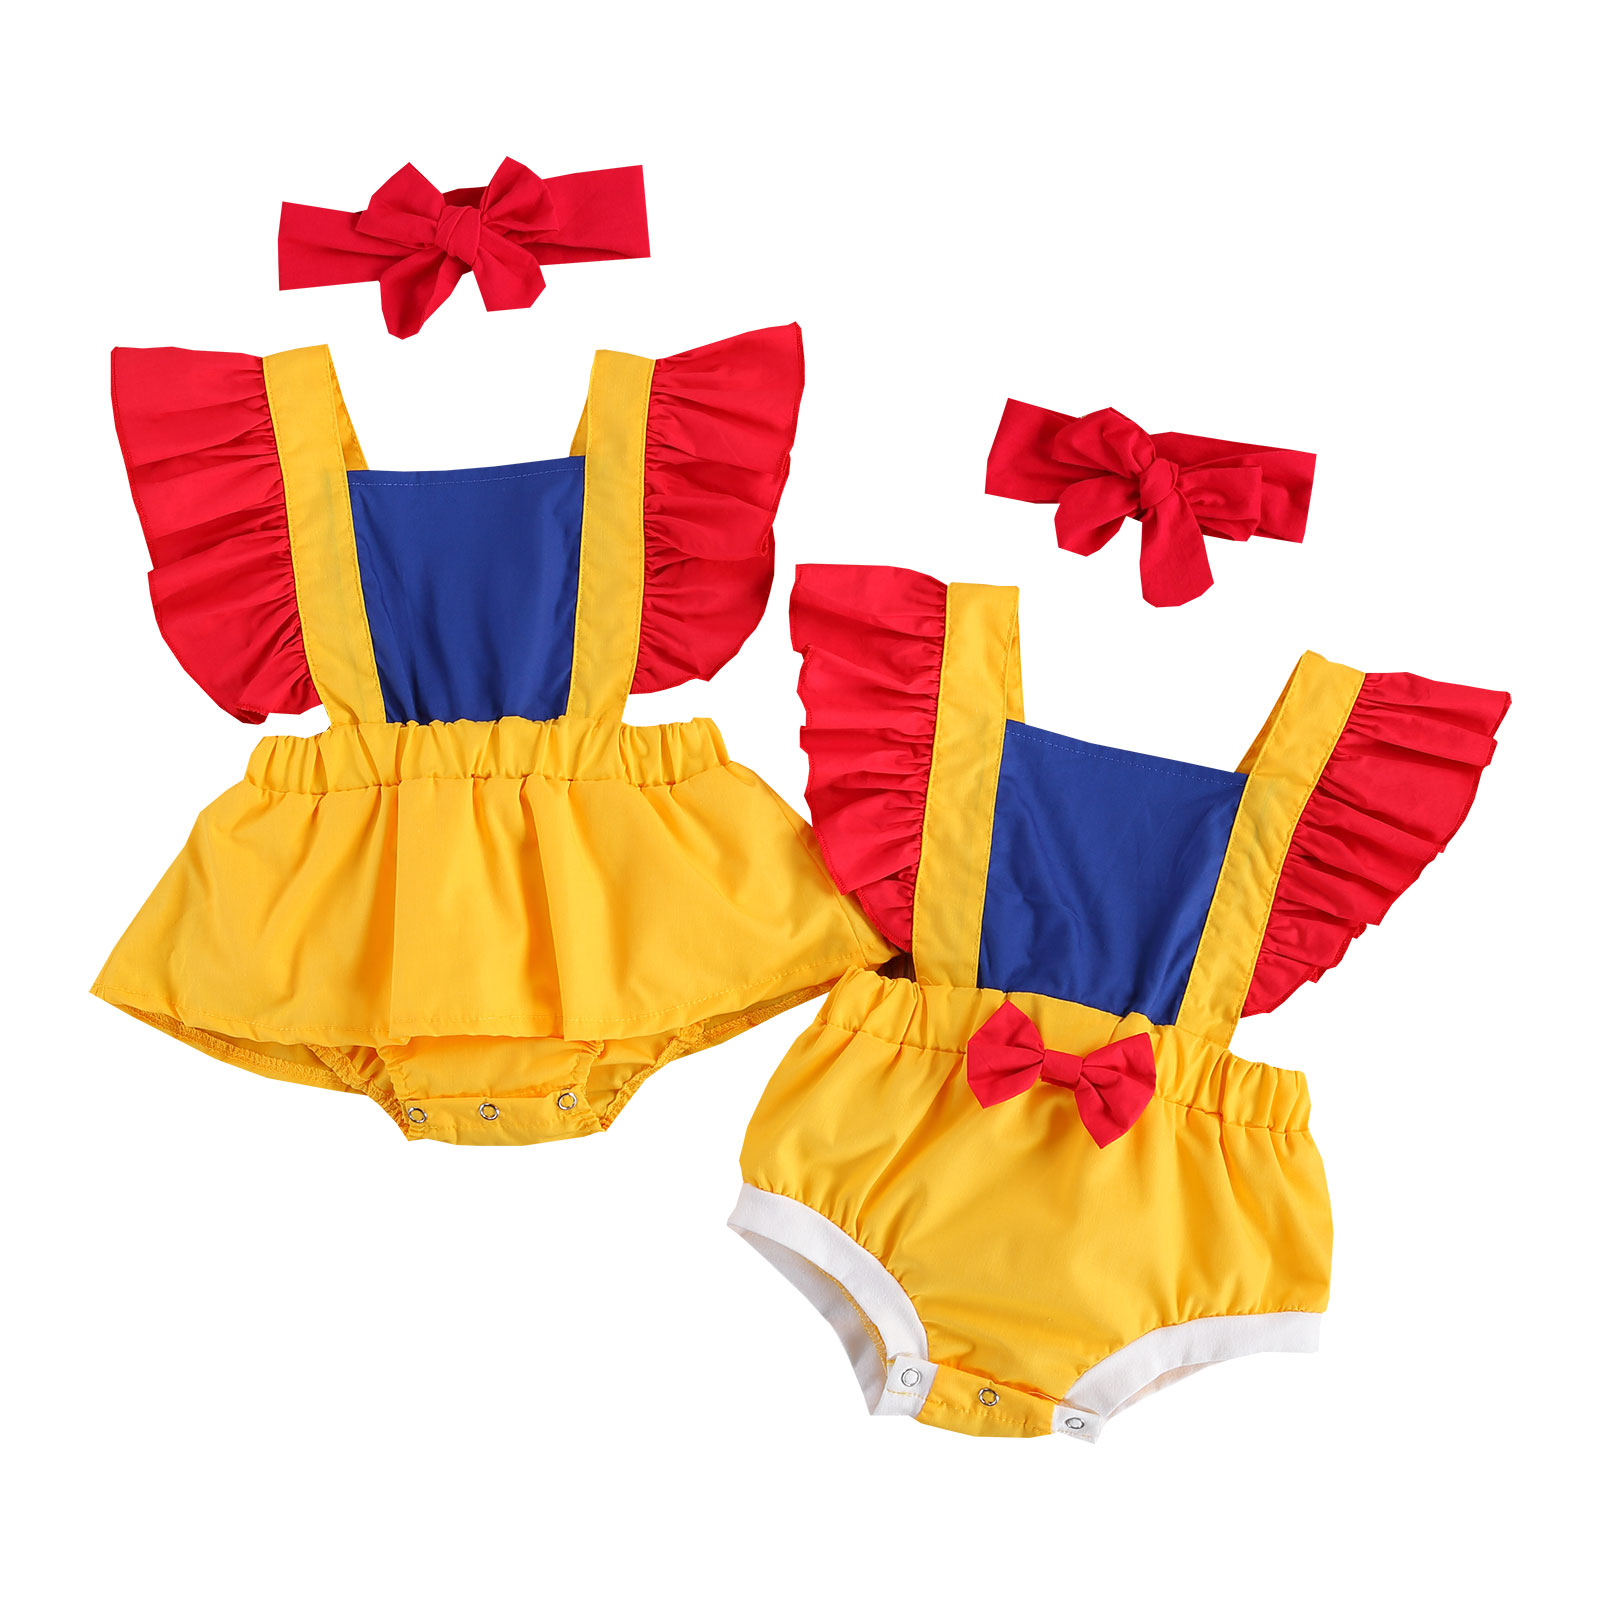 Costumes-Sets Skirts Patchwork-Outfits Ruffled-Sleeve Romper/romper Newborn Baby-Girls